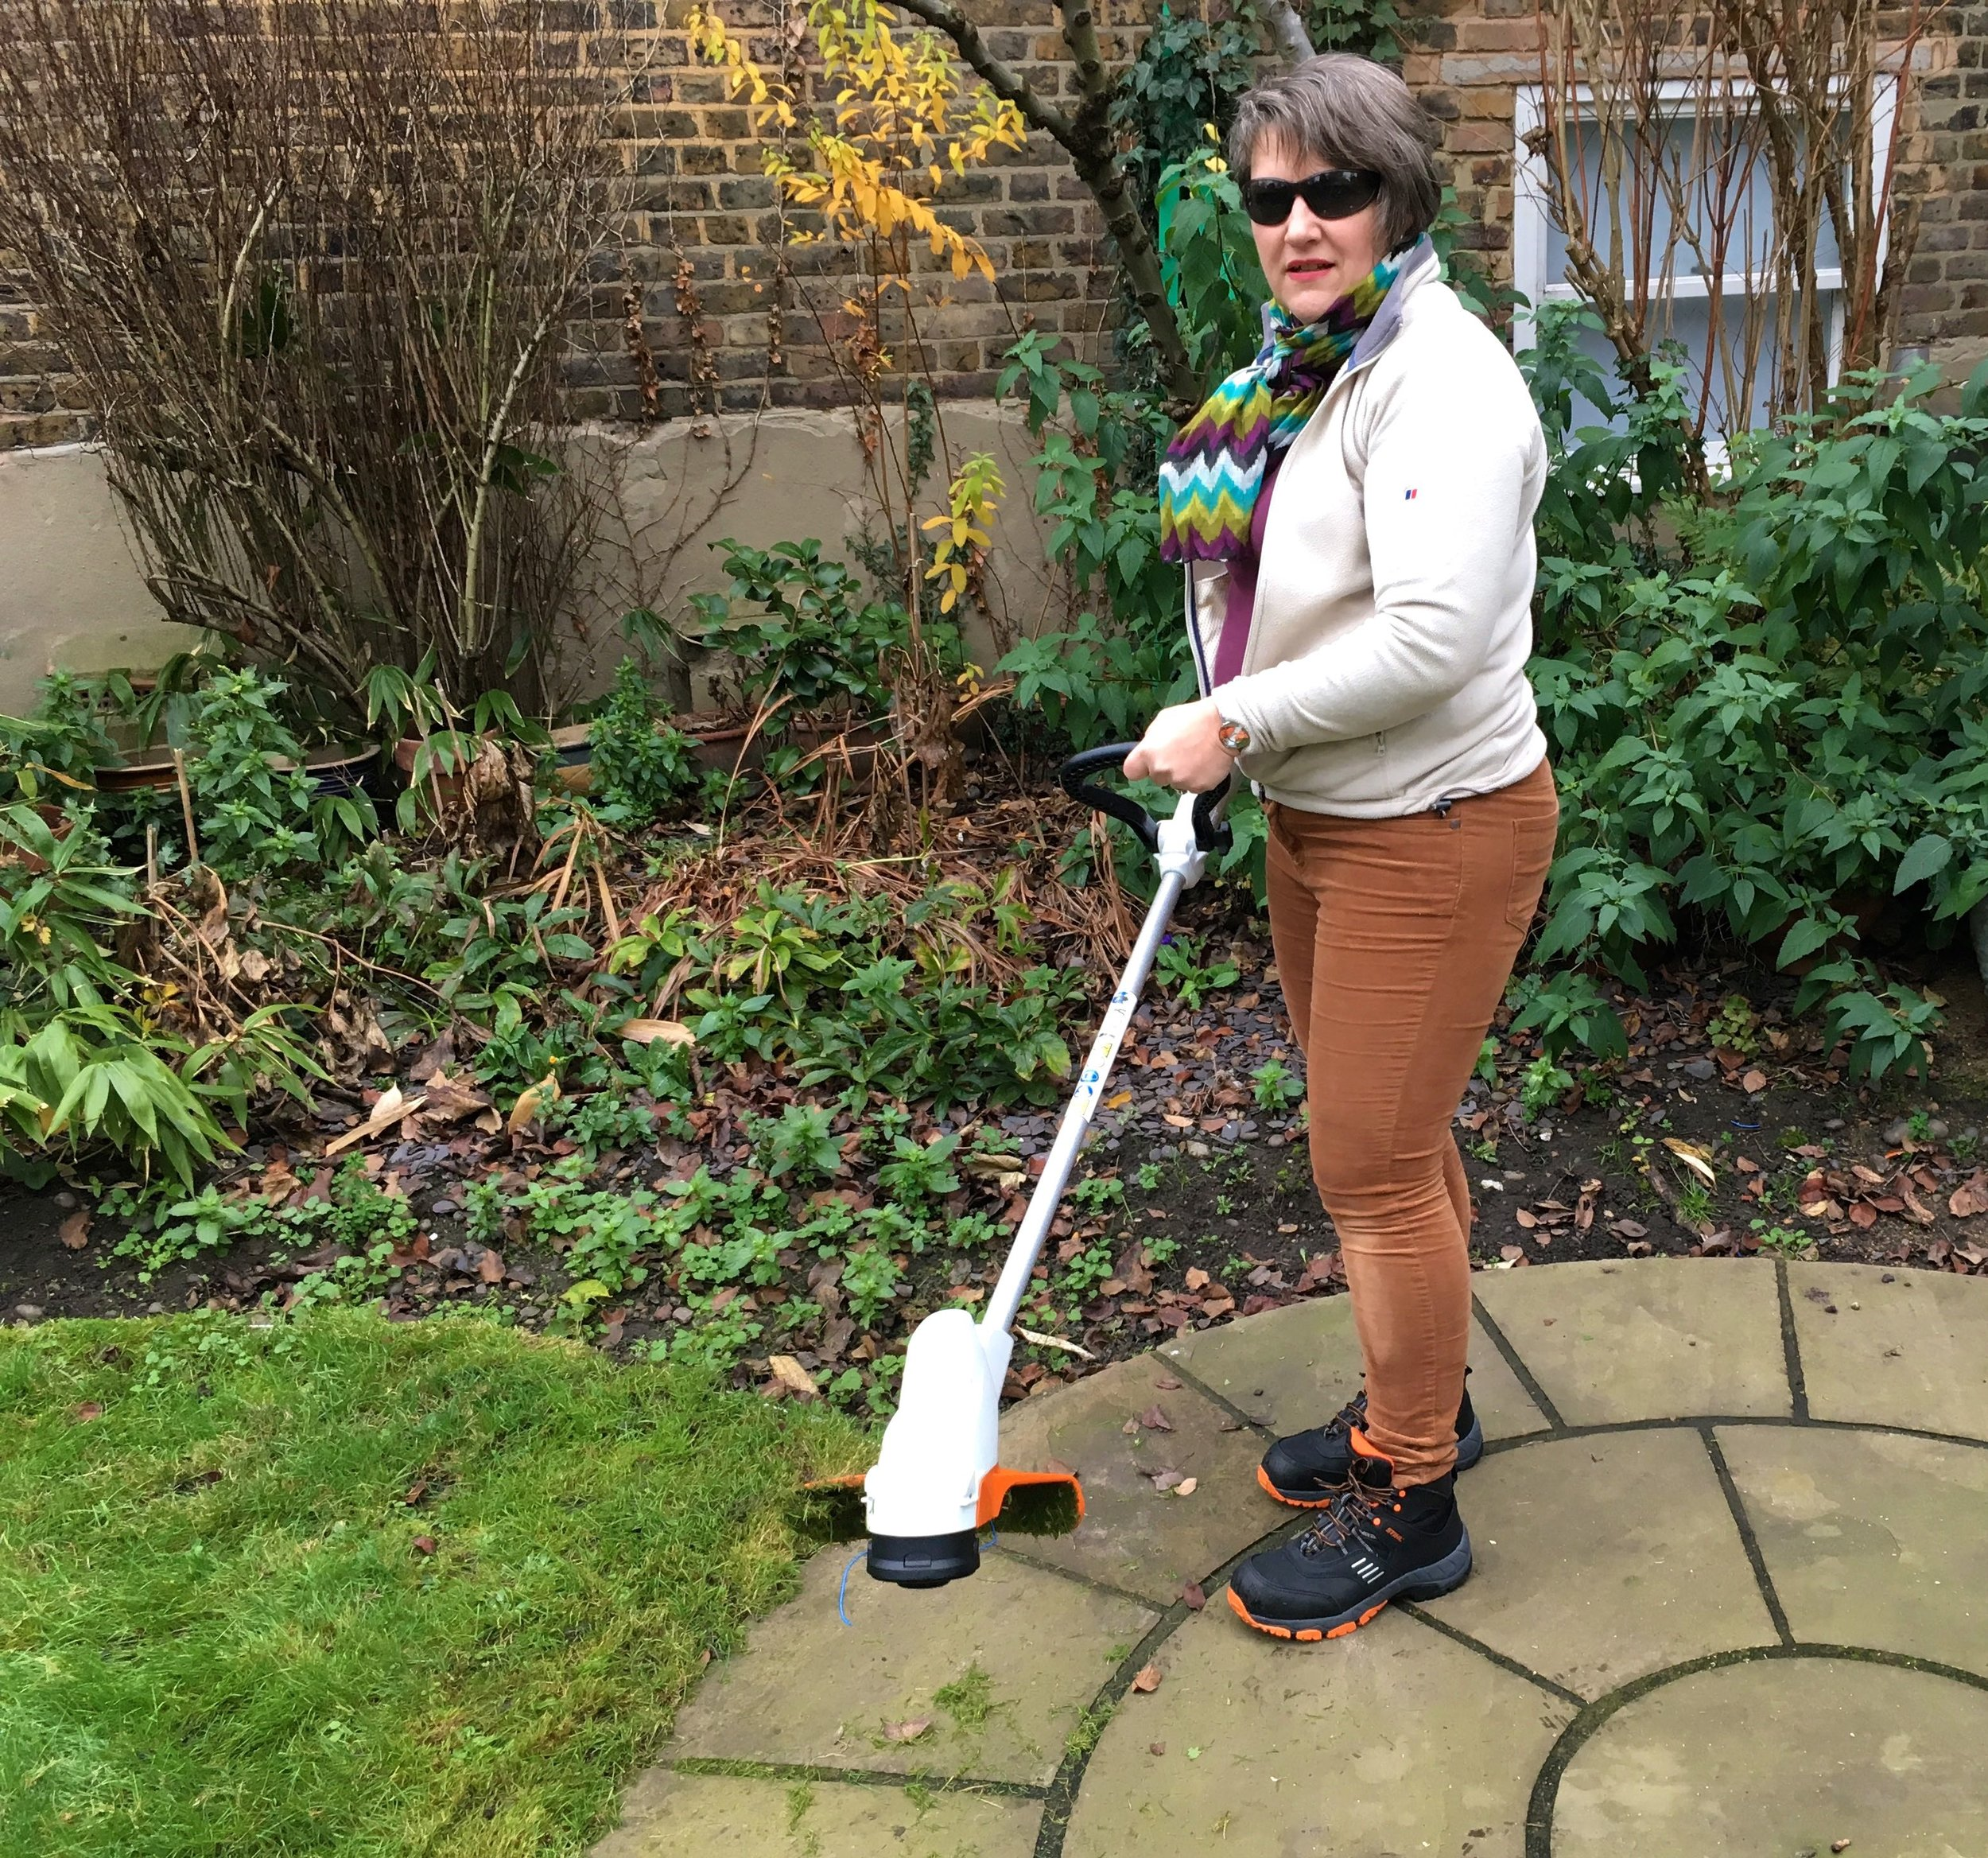 Getting to grips with using the Stihl compact trimmer, when I 'wrestled' it from MOH